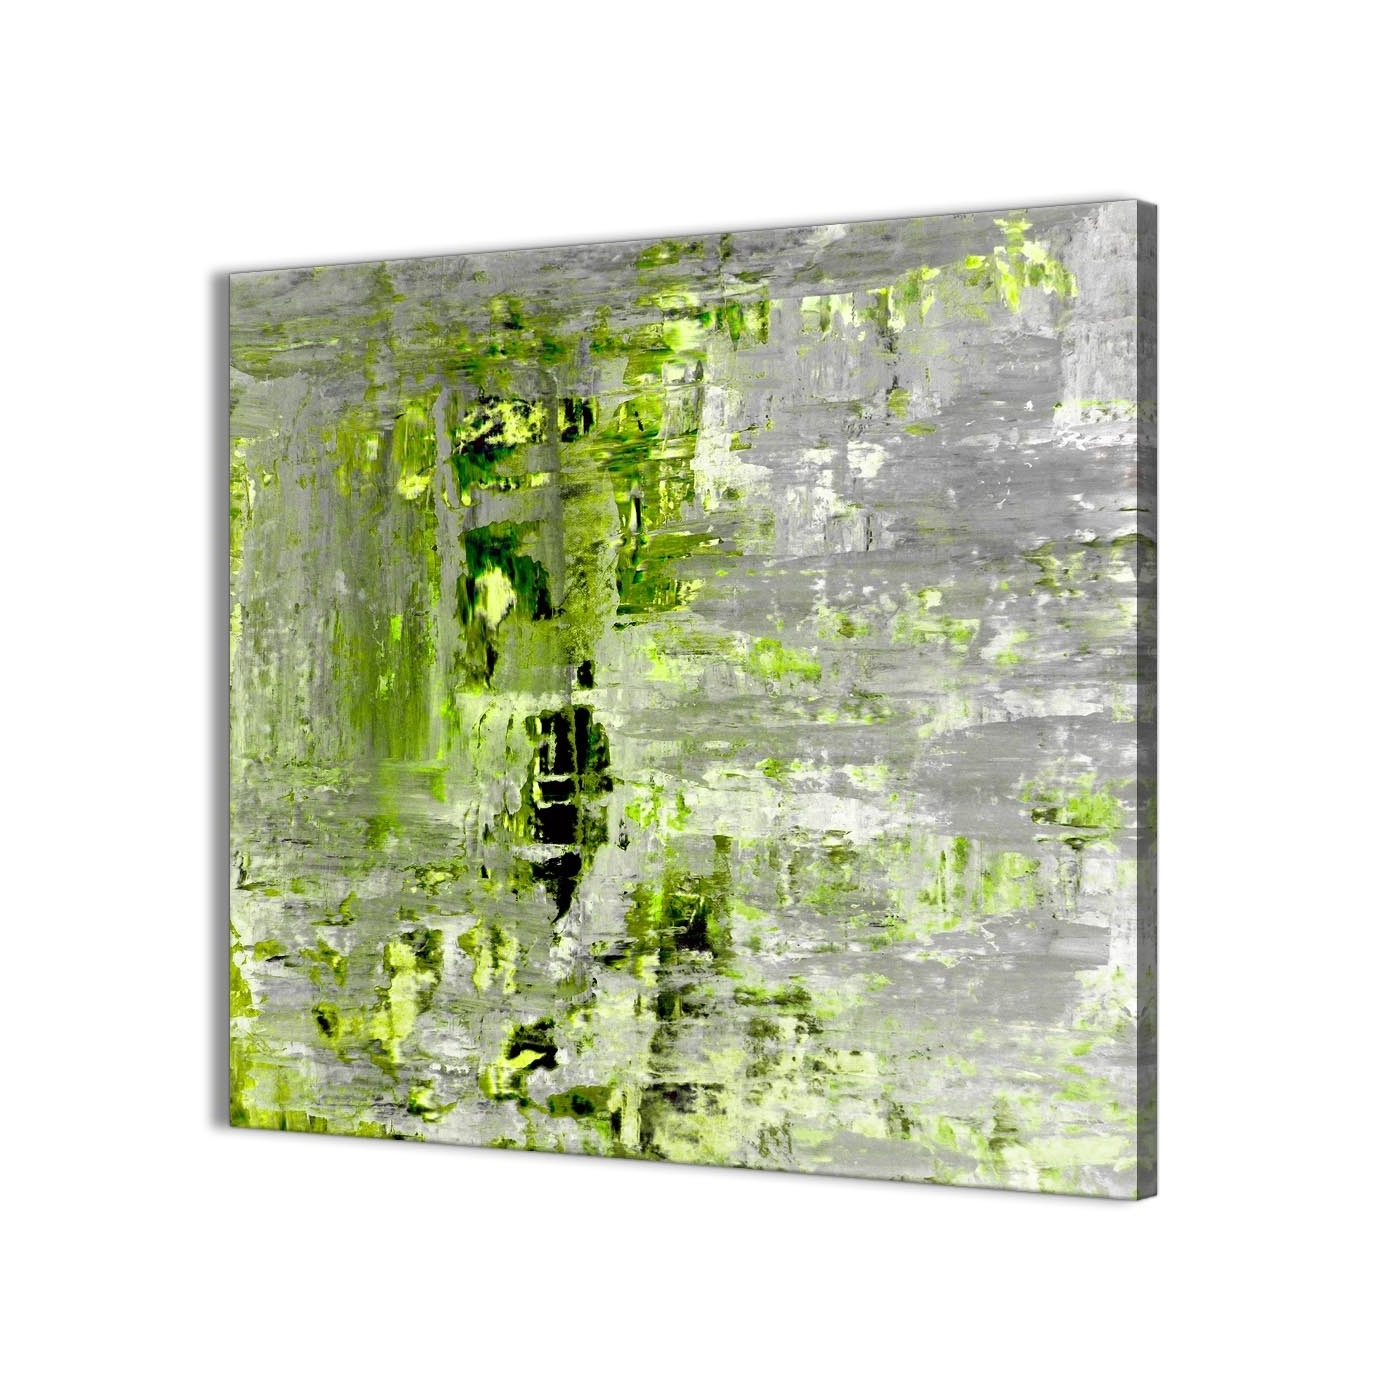 Green Wall Art Intended For Best And Newest Lime Green Grey Abstract Painting Wall Art Print Canvas – Modern (Gallery 1 of 15)